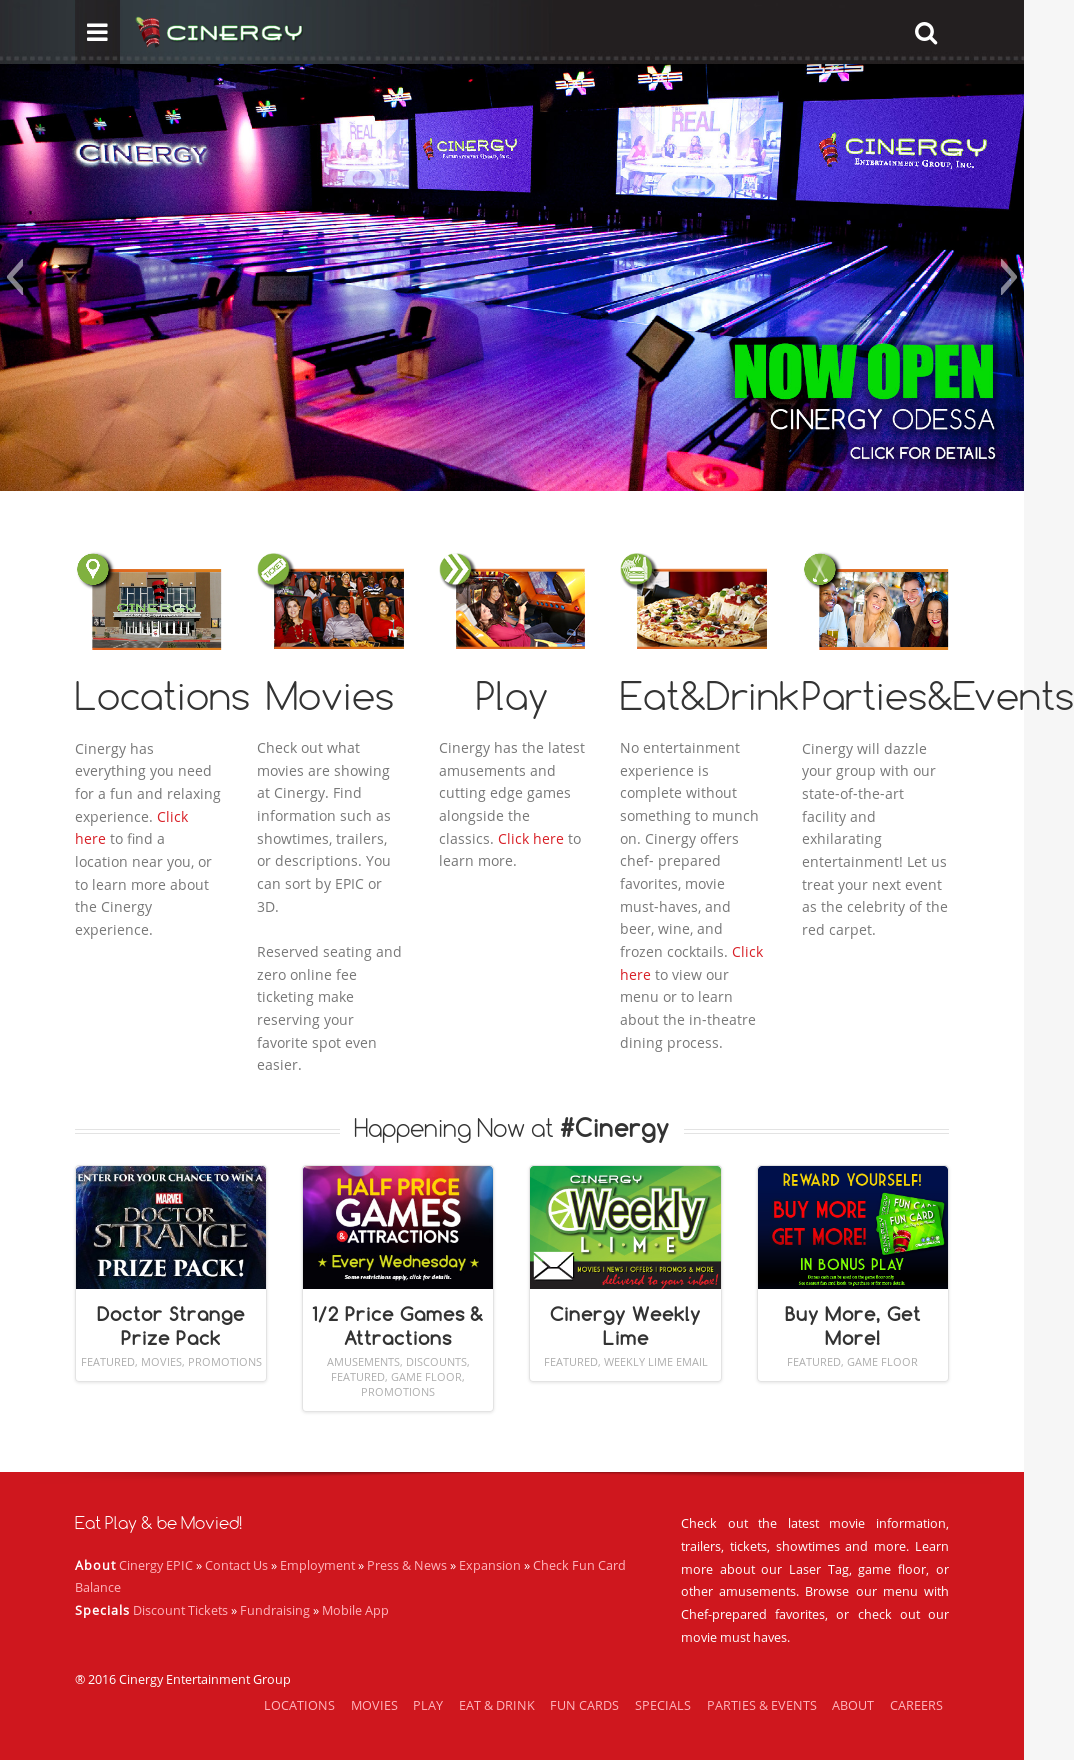 Cinergy Cinemas Competitors, Revenue and Employees - Owler Company